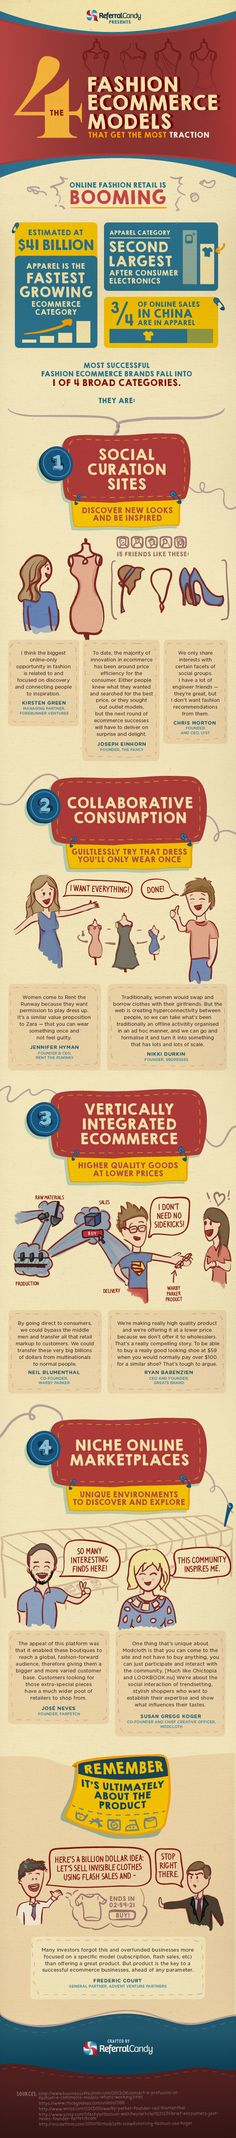 The 4 Fashion Ecommerce Models That Get The Most Traction [Infographic] – Word-of-Mouth and Referral Marketing Blog